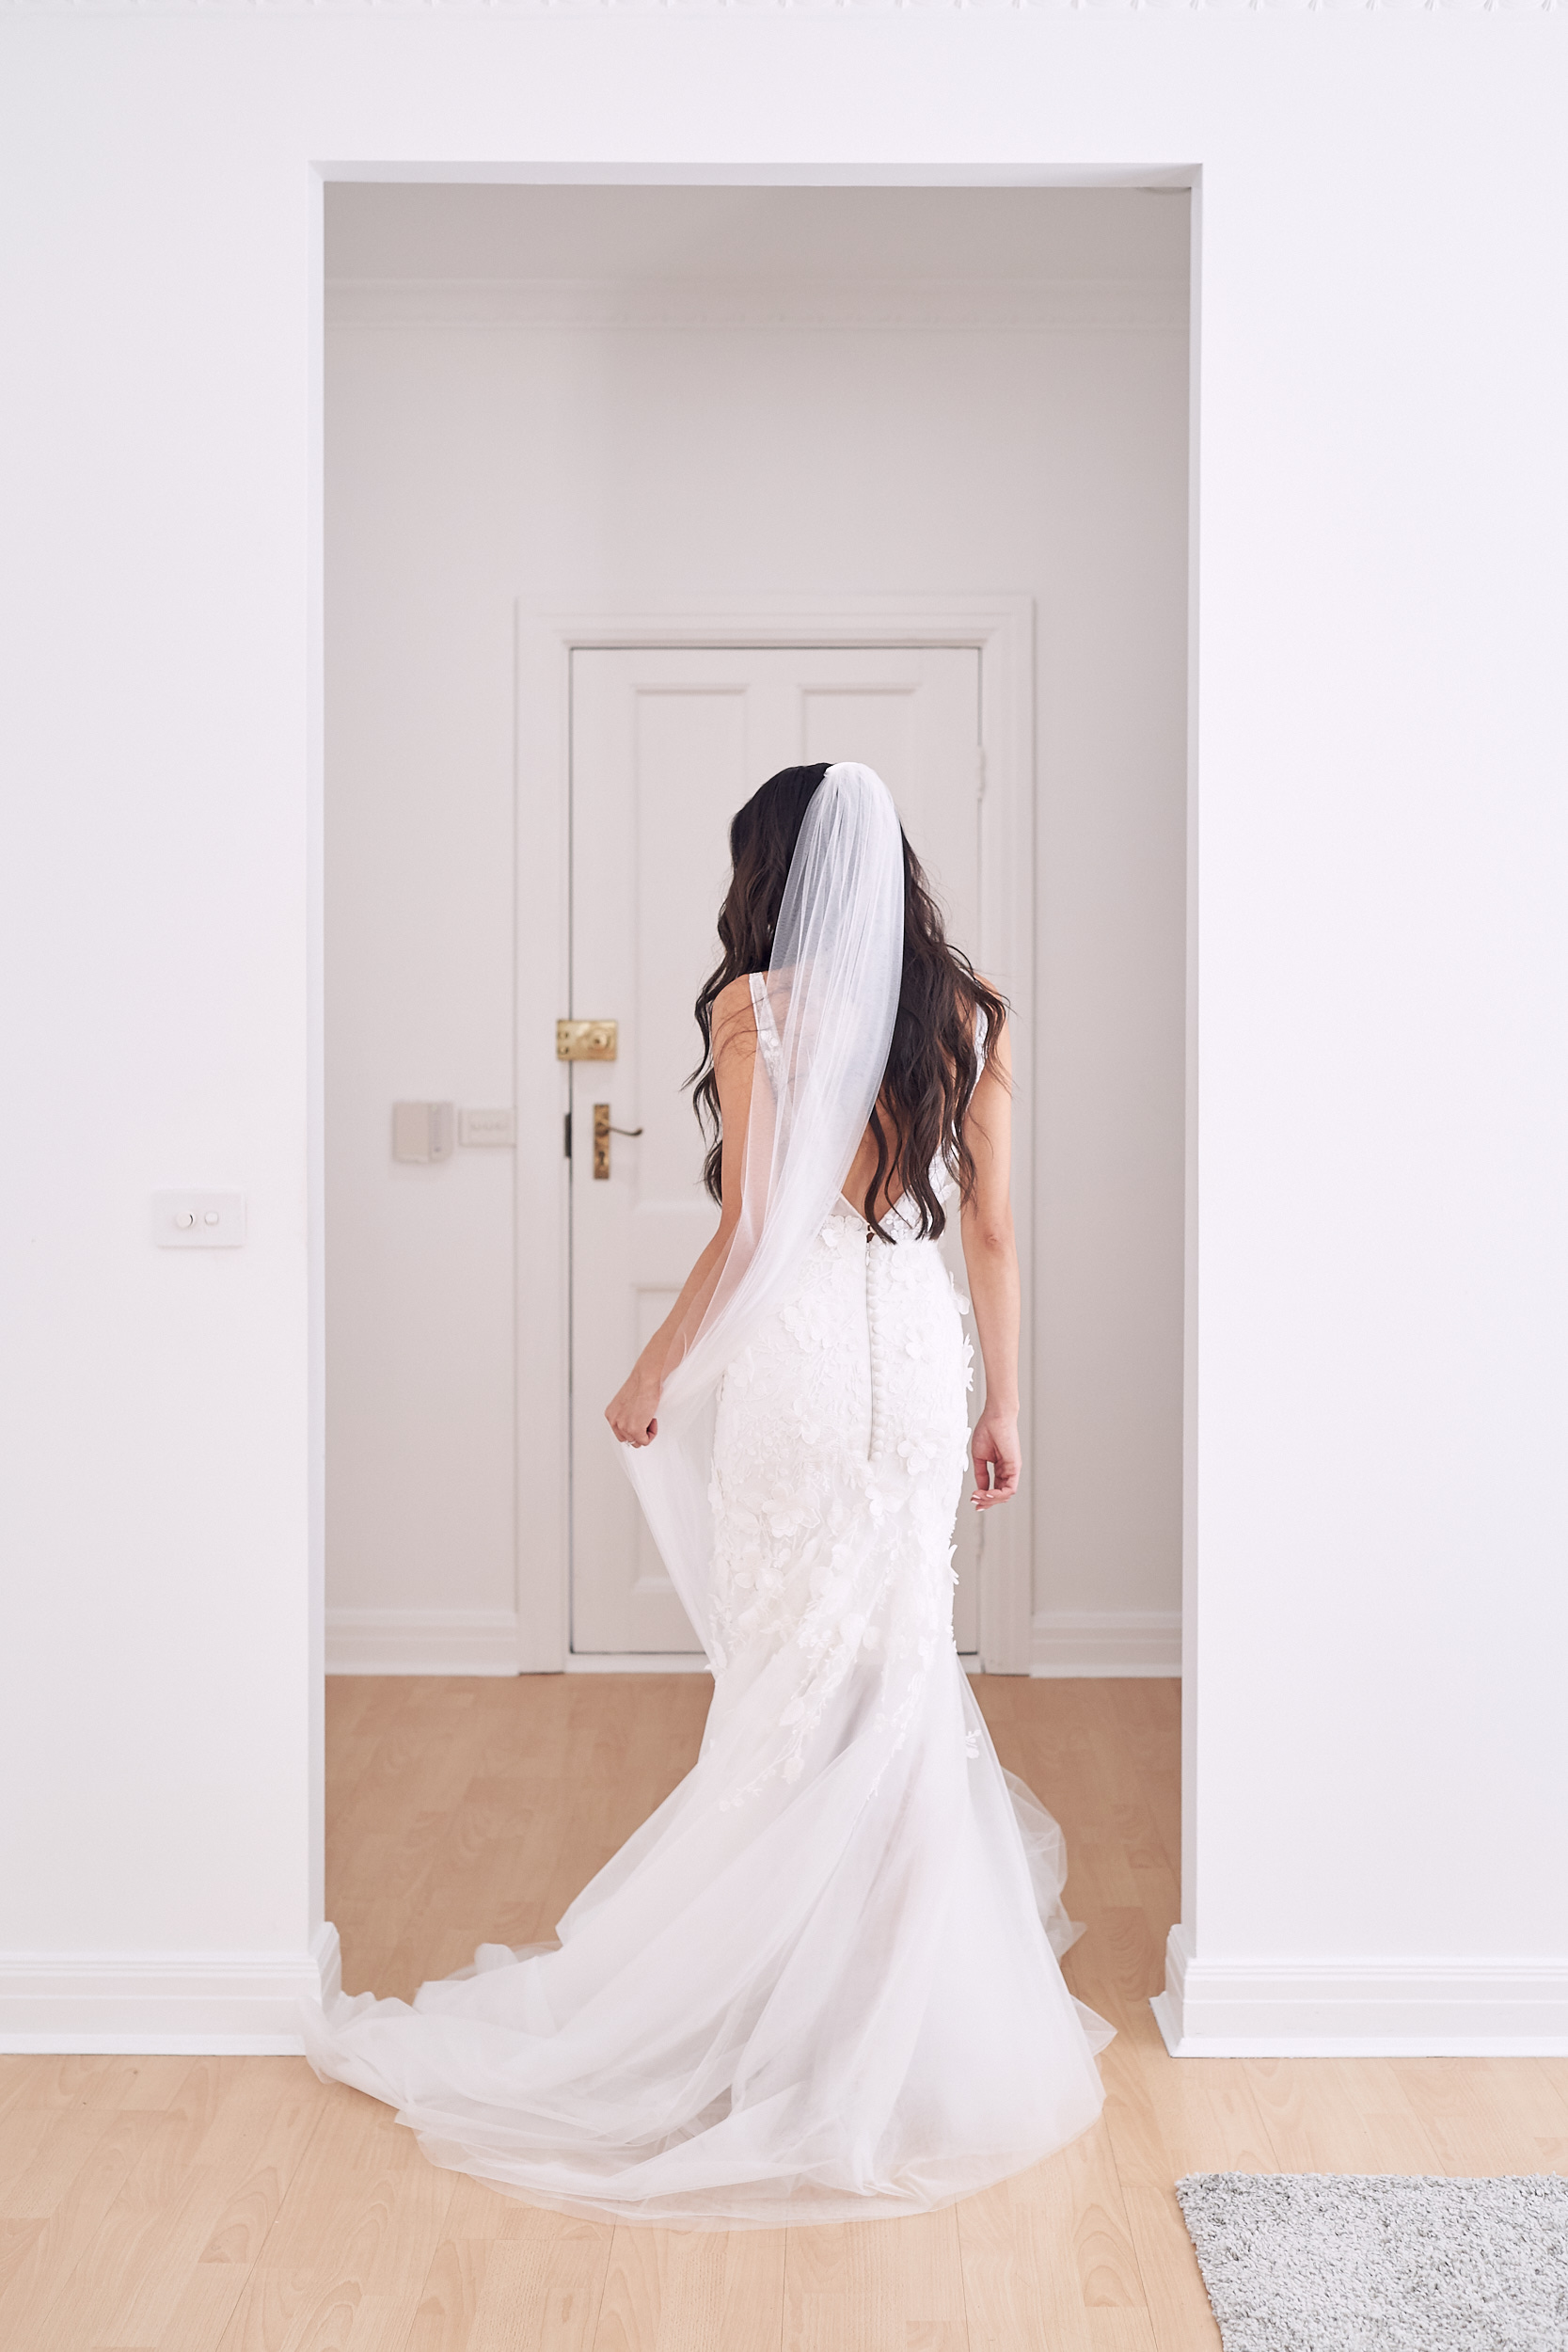 Simple wedding dress by Helen Manuel. Photo by Lost In Love Photography